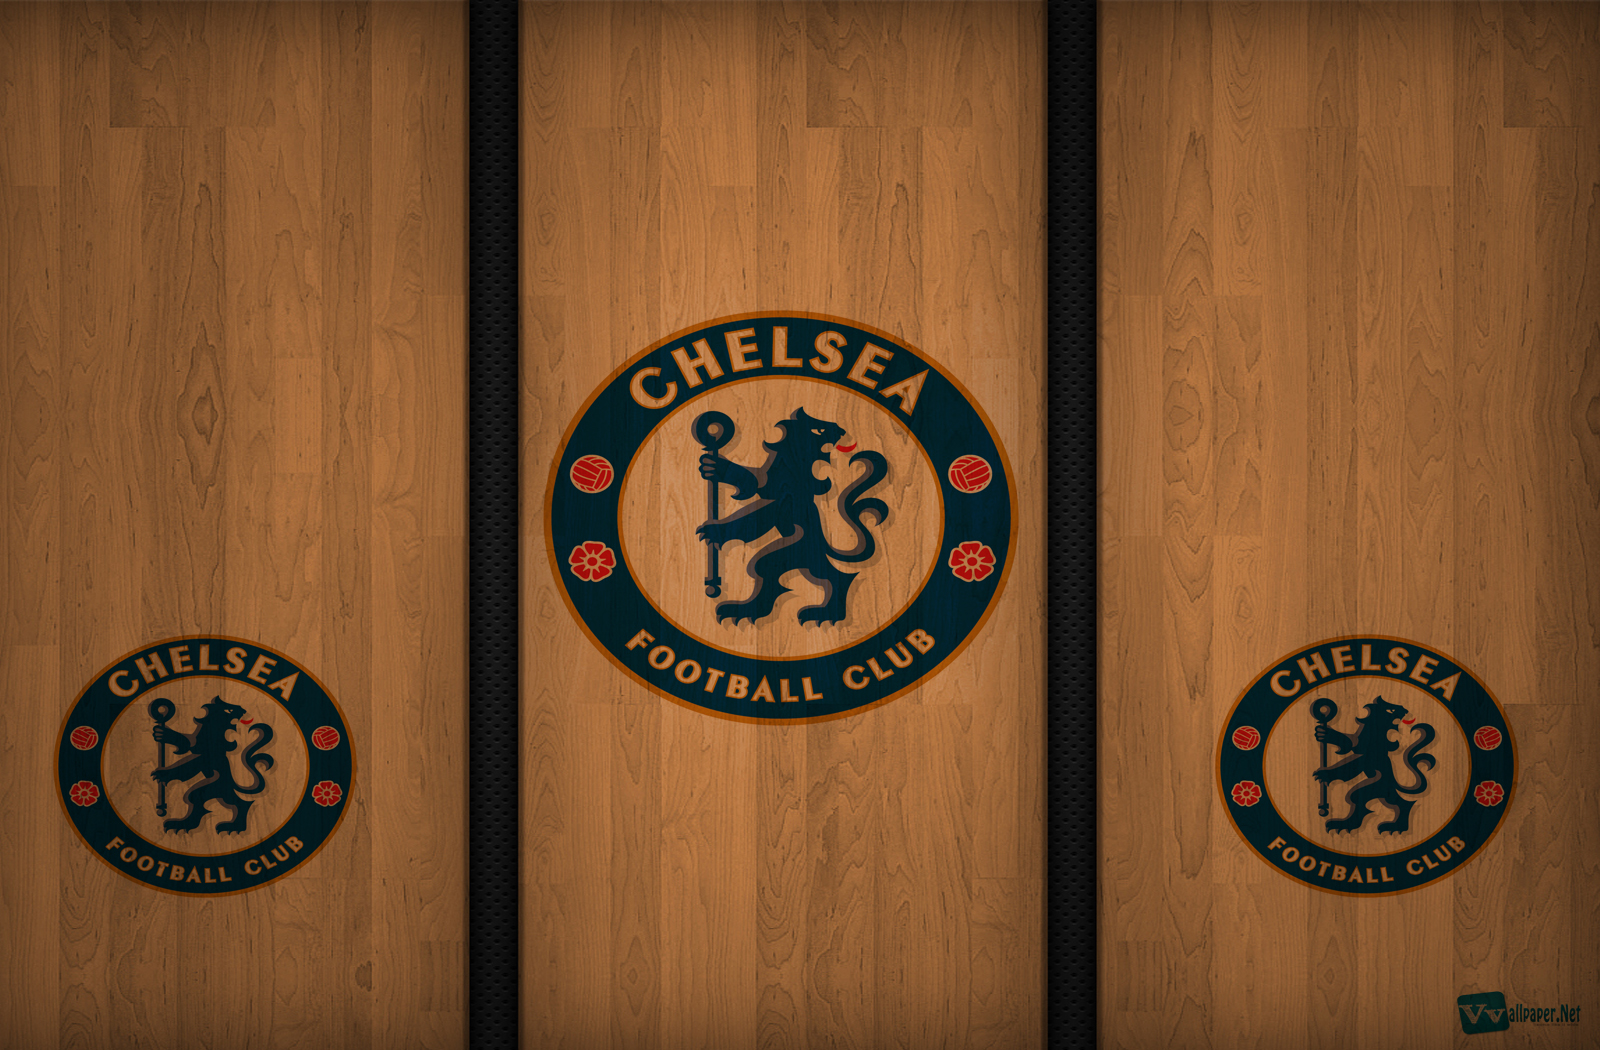 Desktop wallpapers hd chelsea football wallpaper voltagebd Gallery